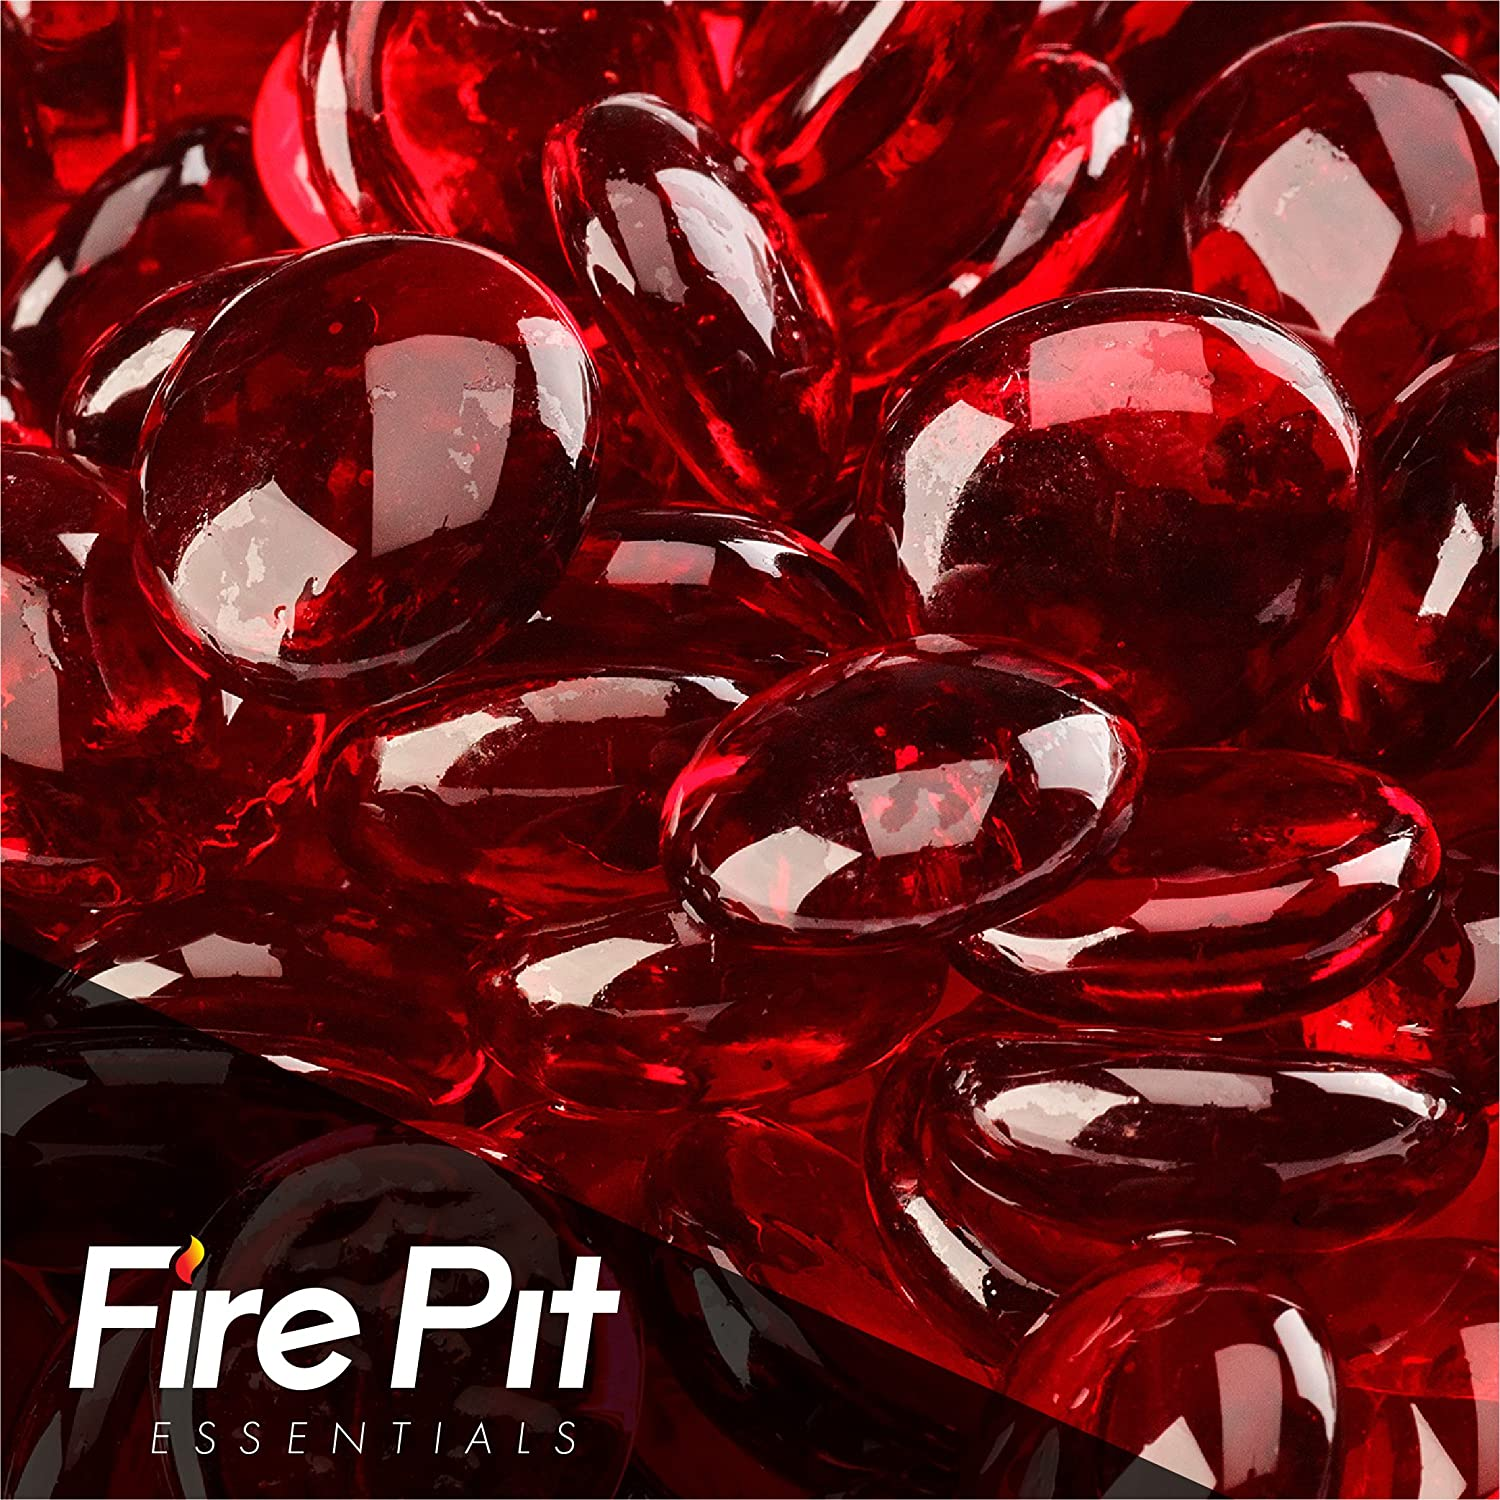 Sangria Fire Beads Fire Glass Firepit Glass 10 Pounds Great for Fire Pit Fireglass or Fireplace Glass Fire Pit Essentials FB-01